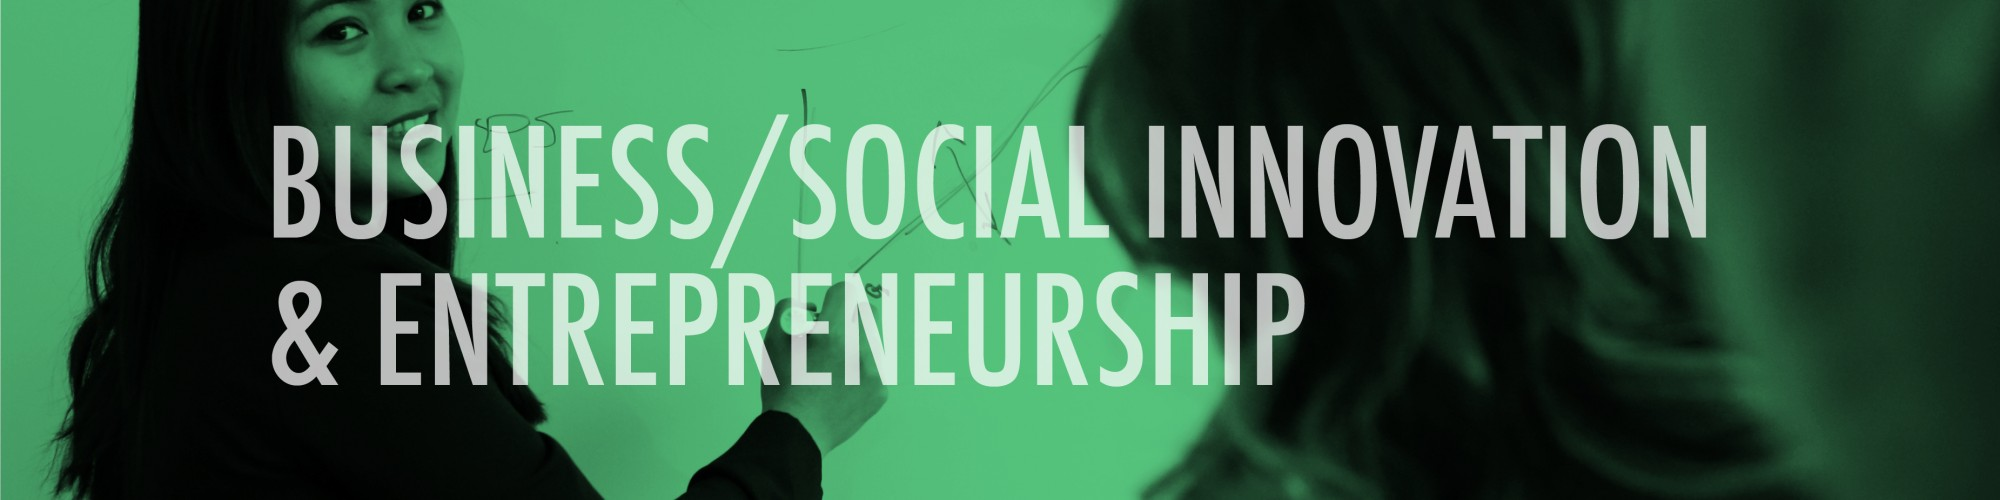 BusinessSocialInnovationEntrepreneurship